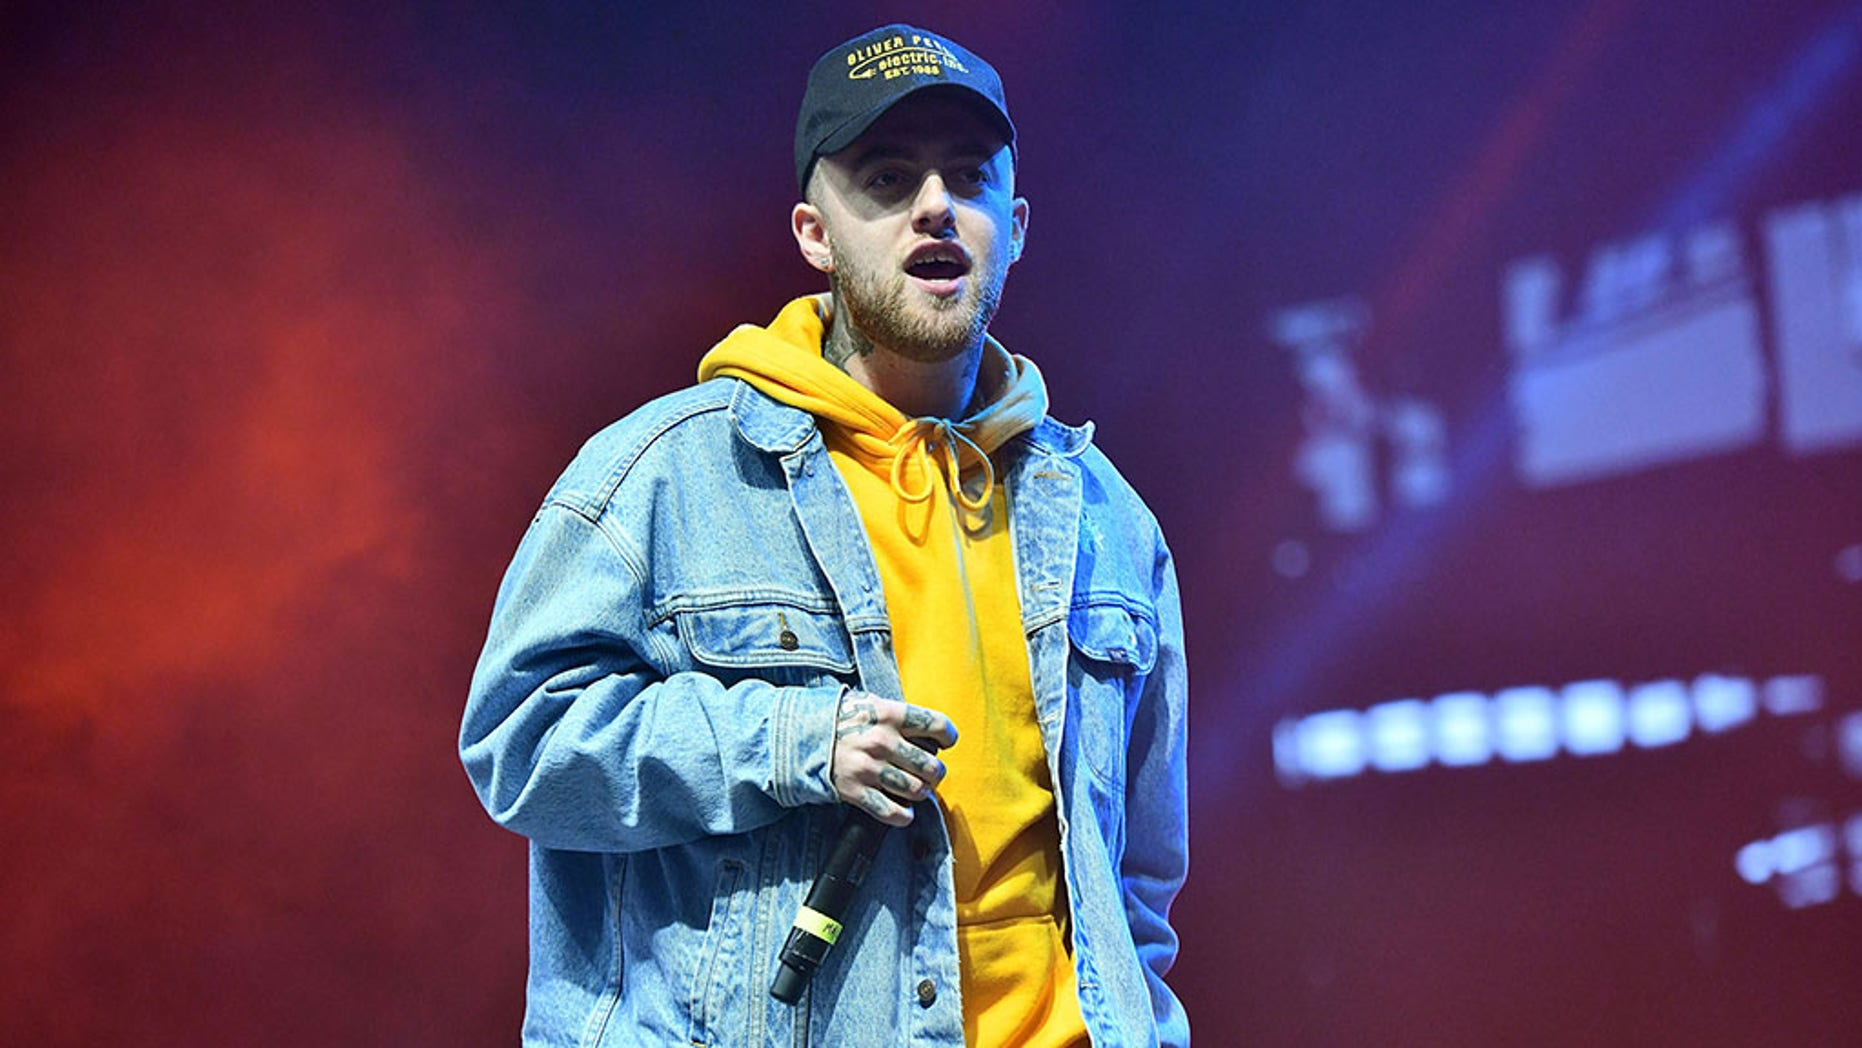 An autopsy was performed on rapper Mac Miller, more tests needed, says LA County coroner.